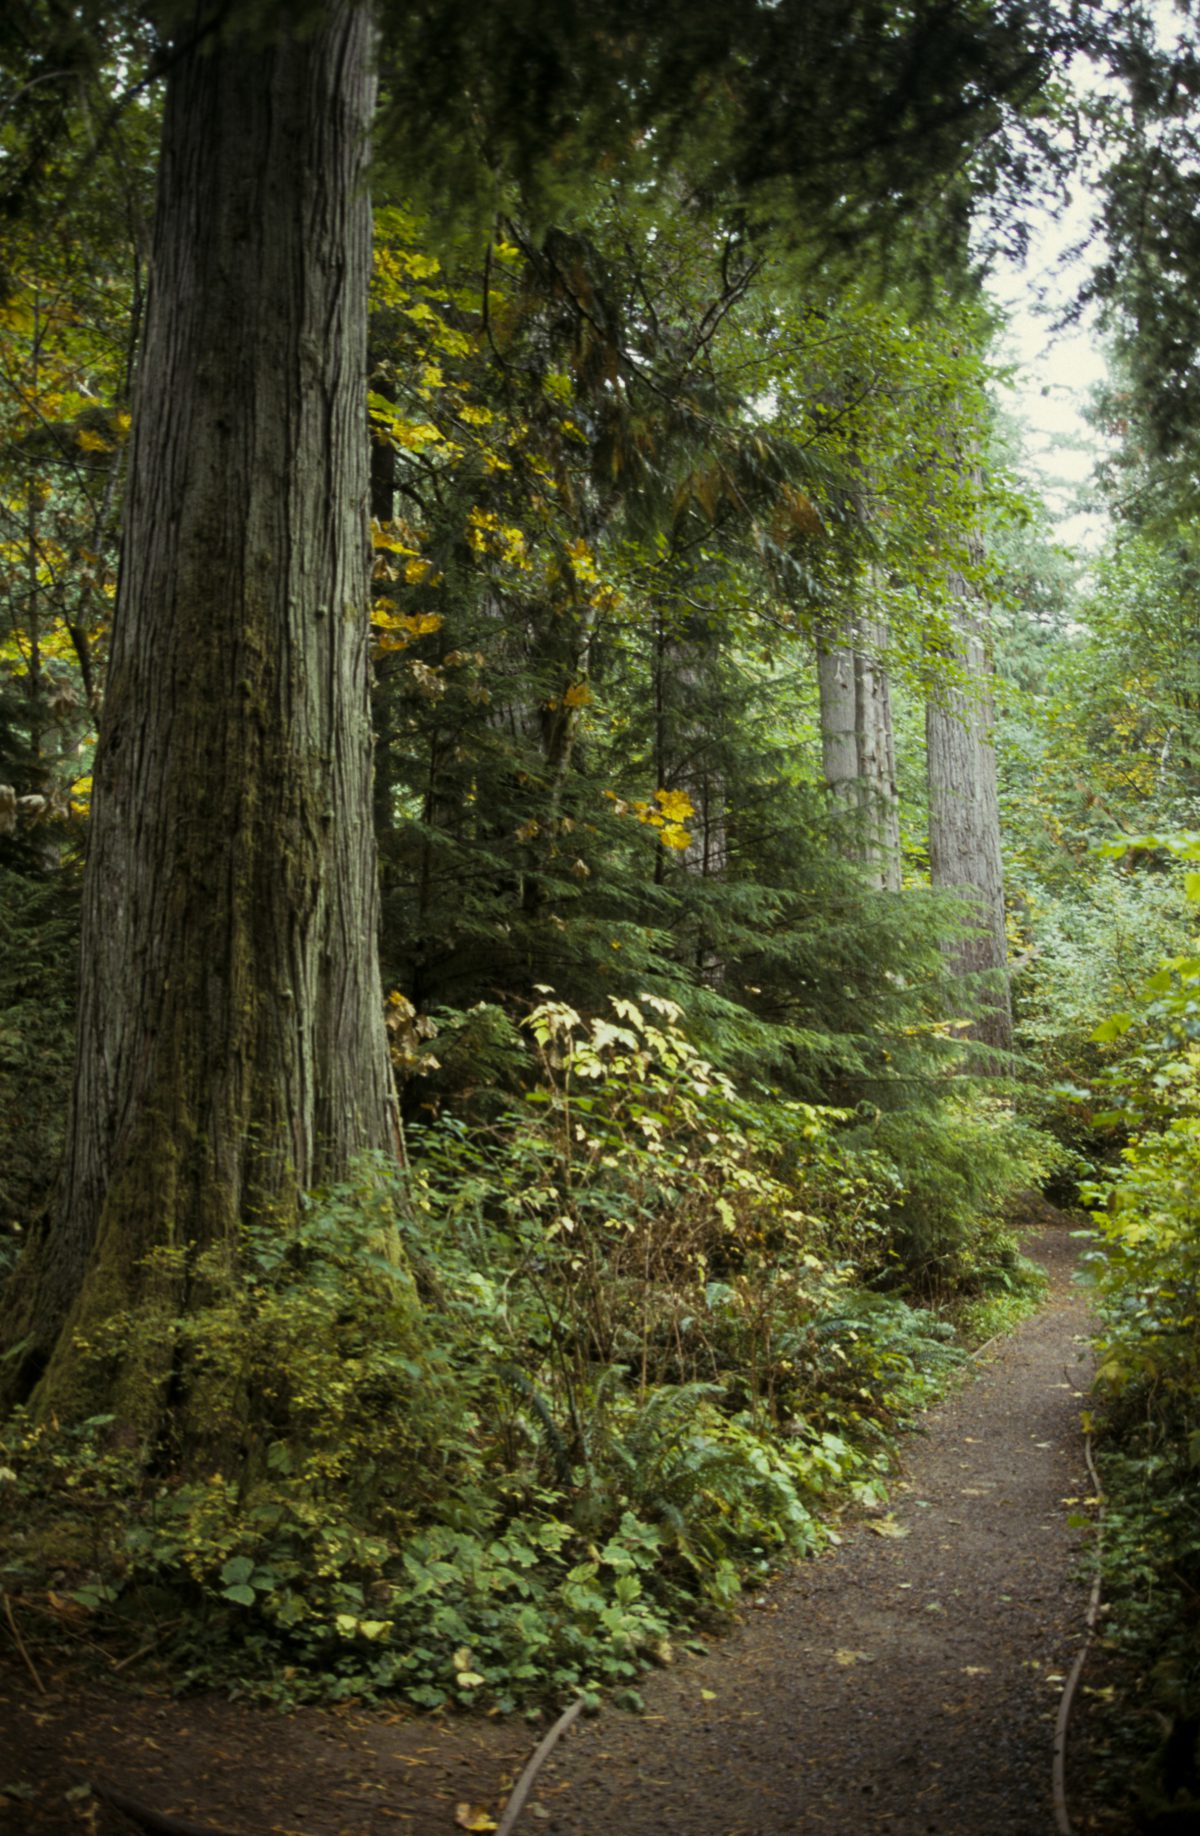 Heading to Tofino, forest